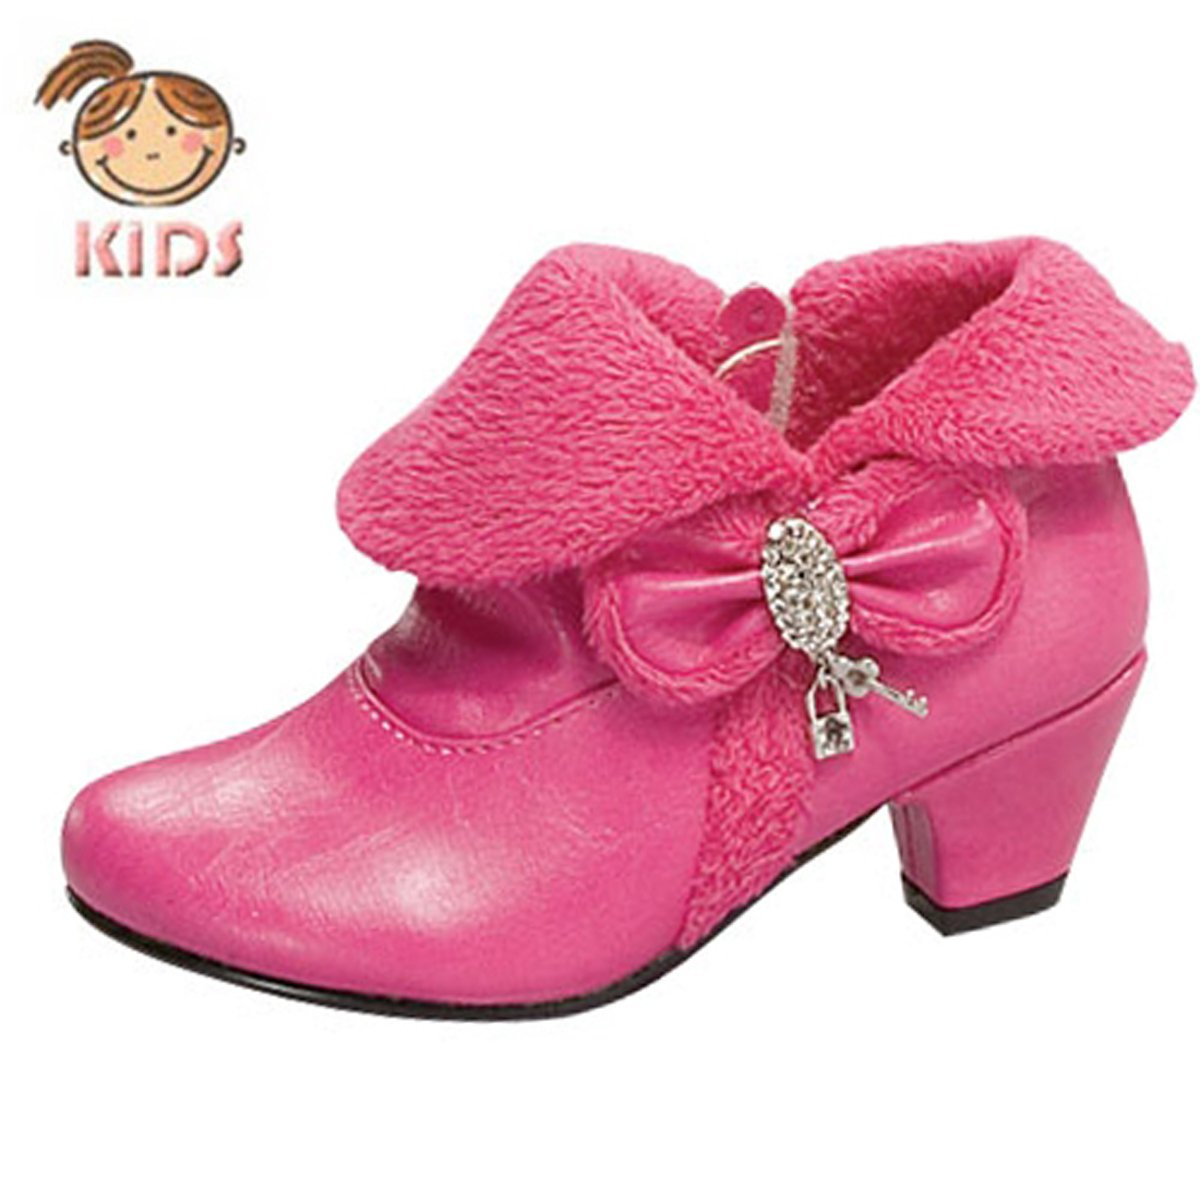 Lucky Top Baby Bow Tie Jewelry Ankle Boots Auto12f White or Fuchsia (7, Fuchsia)